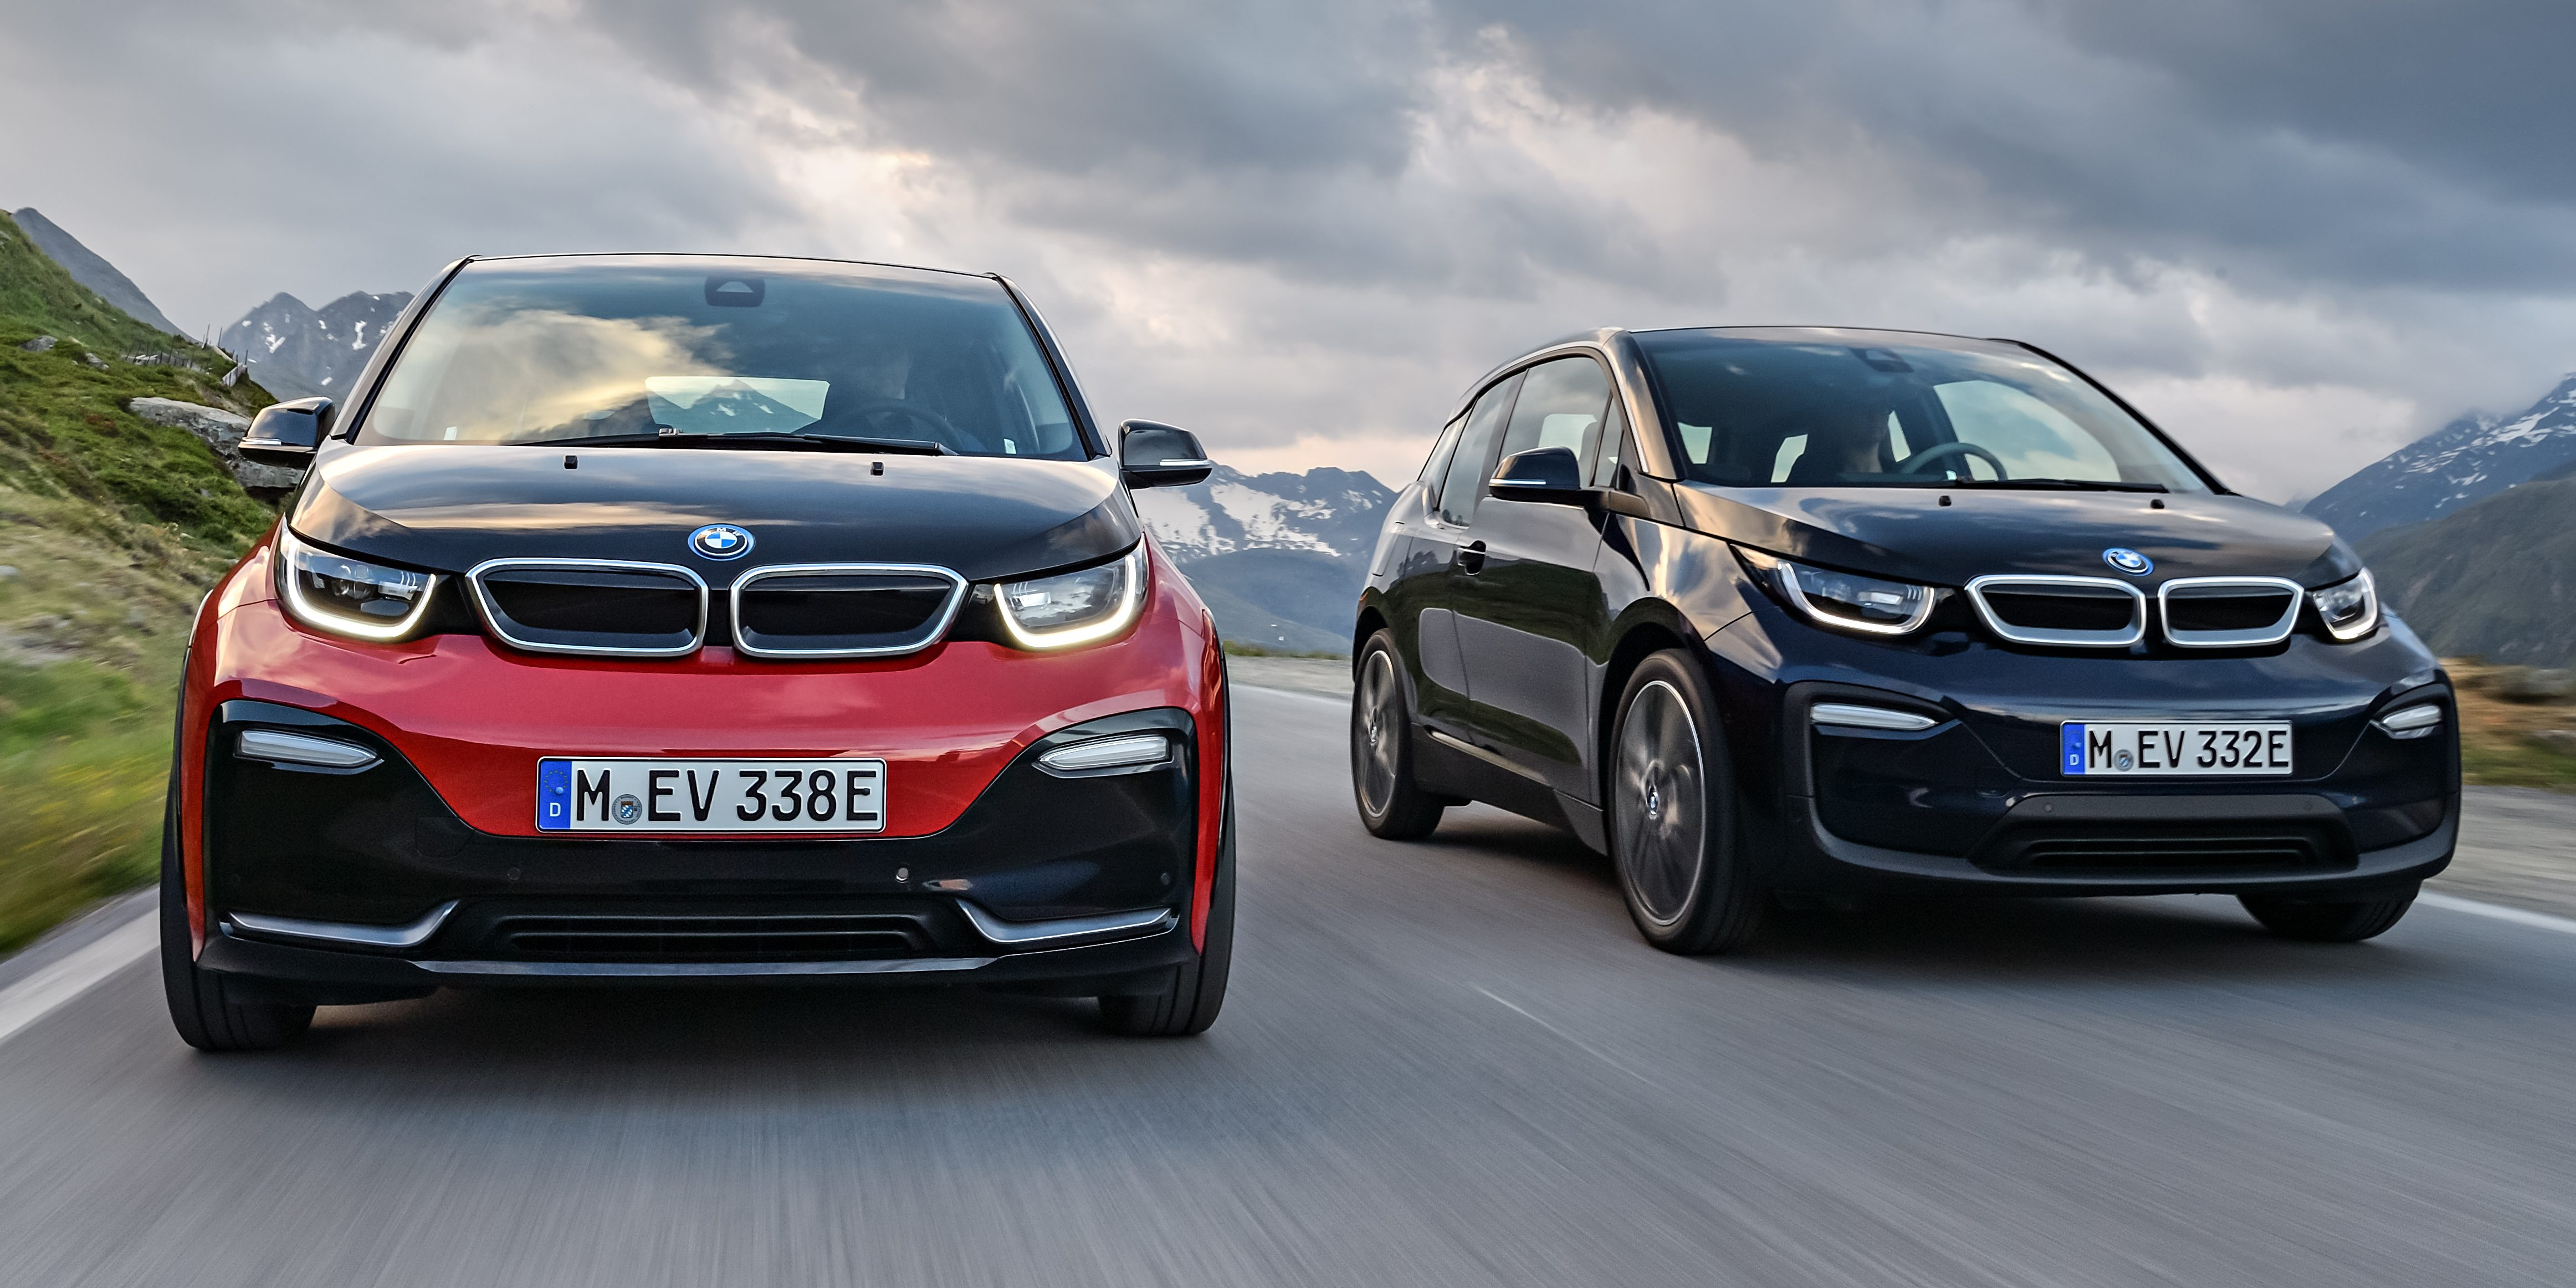 Bmw Is Considering Killing The I3 And I8 Programs Ahead Of New